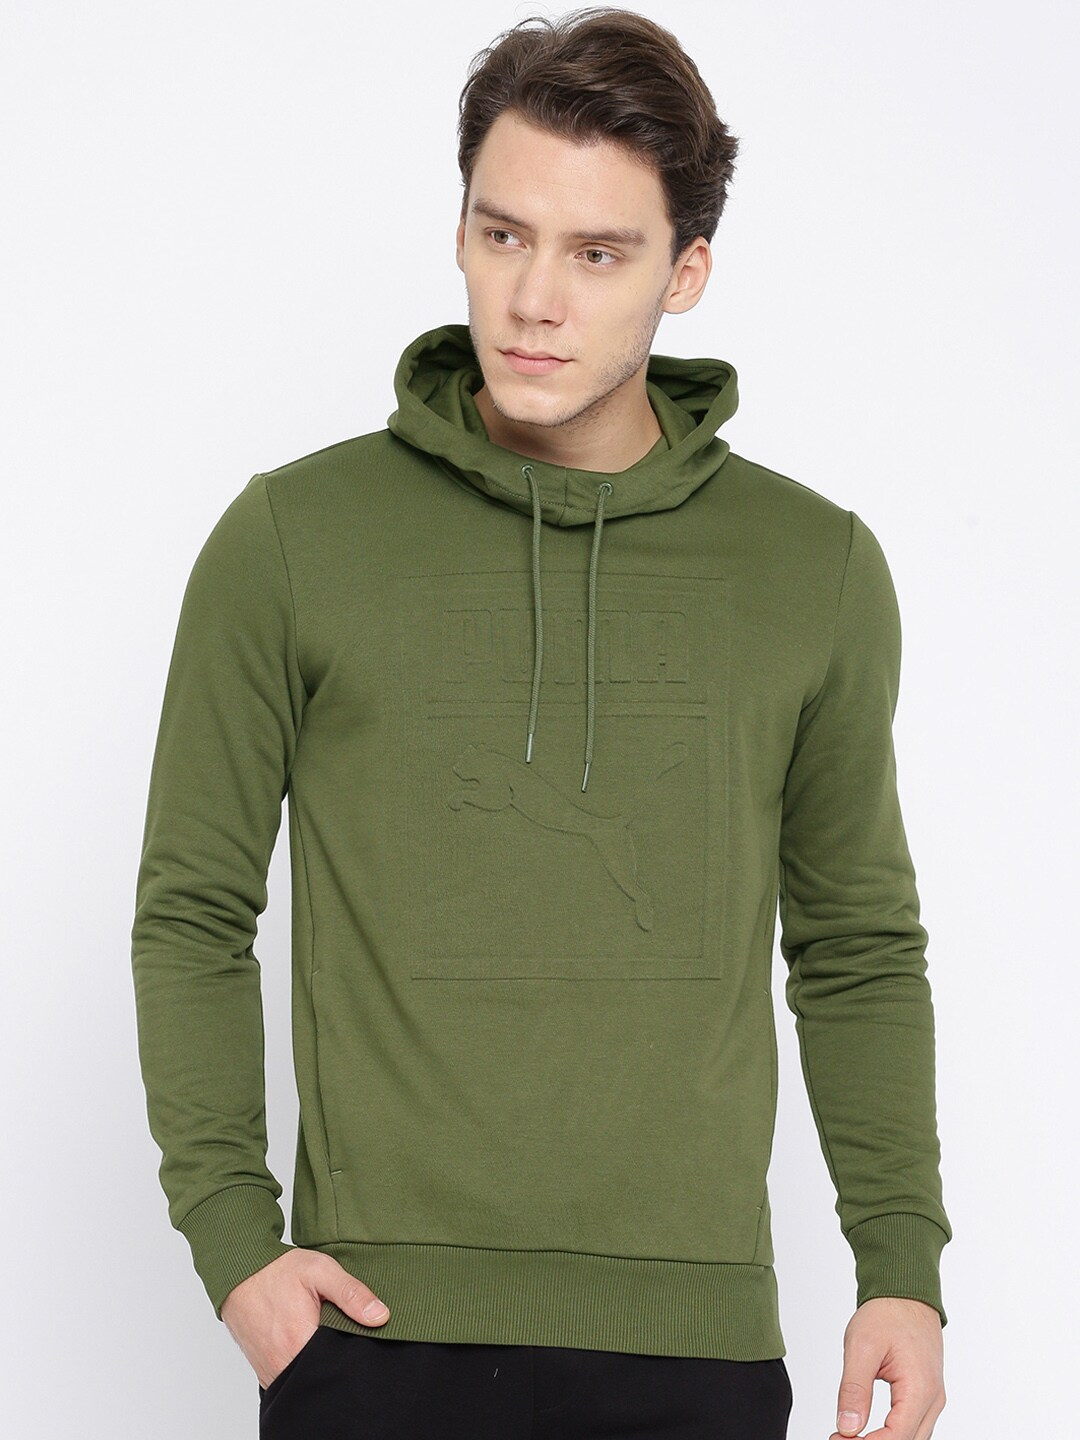 Buy Puma Olive Archive Embossed Logo Hoody Men's Sweatshirt At Best Price